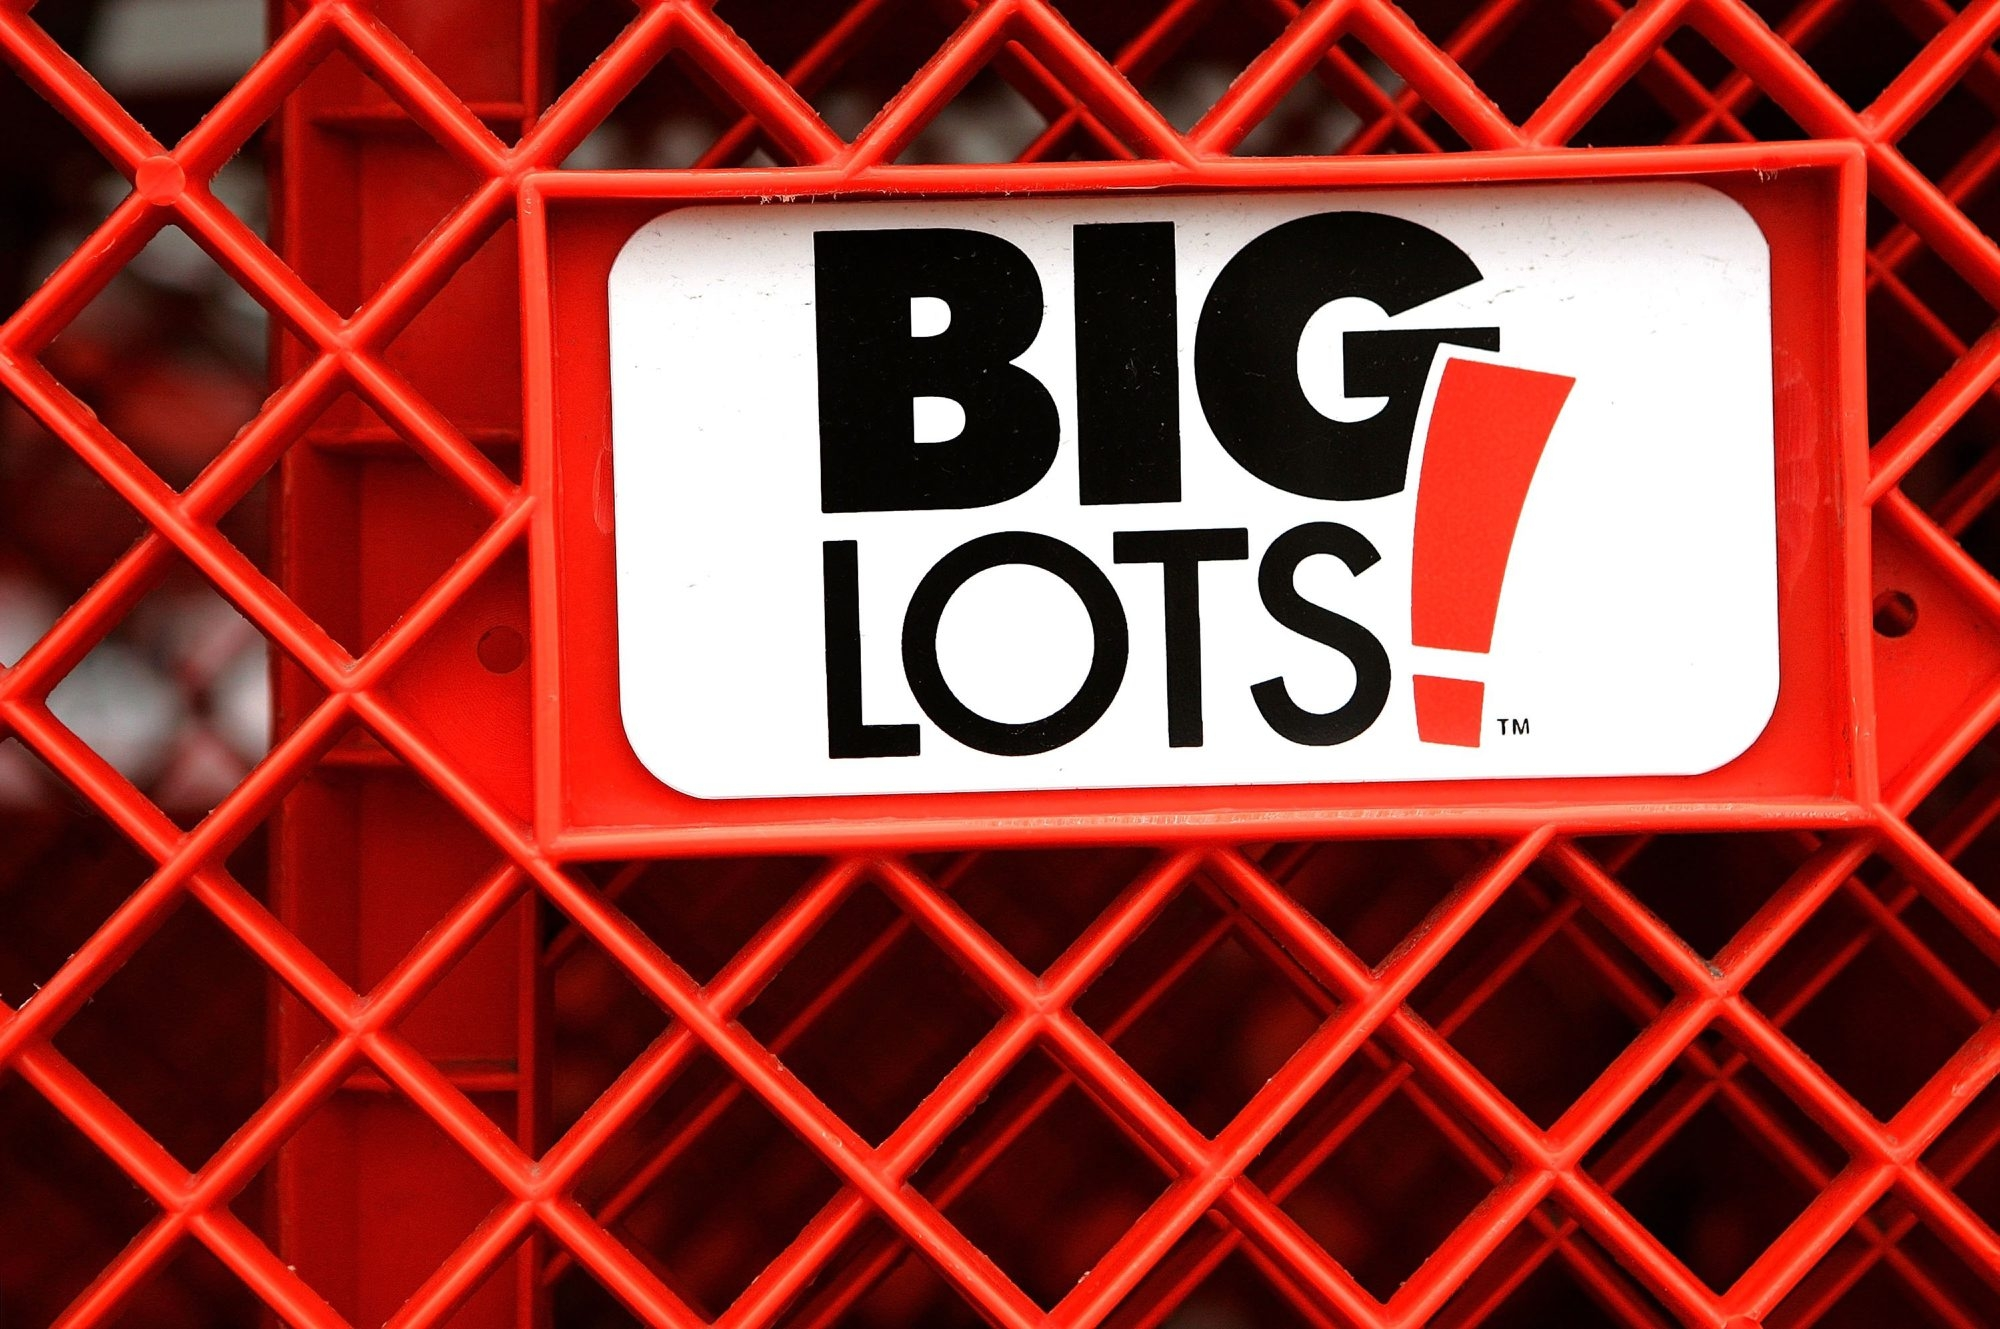 Big Lots' logo is displayed on one of the store's shopping carts in Niles, Ill.